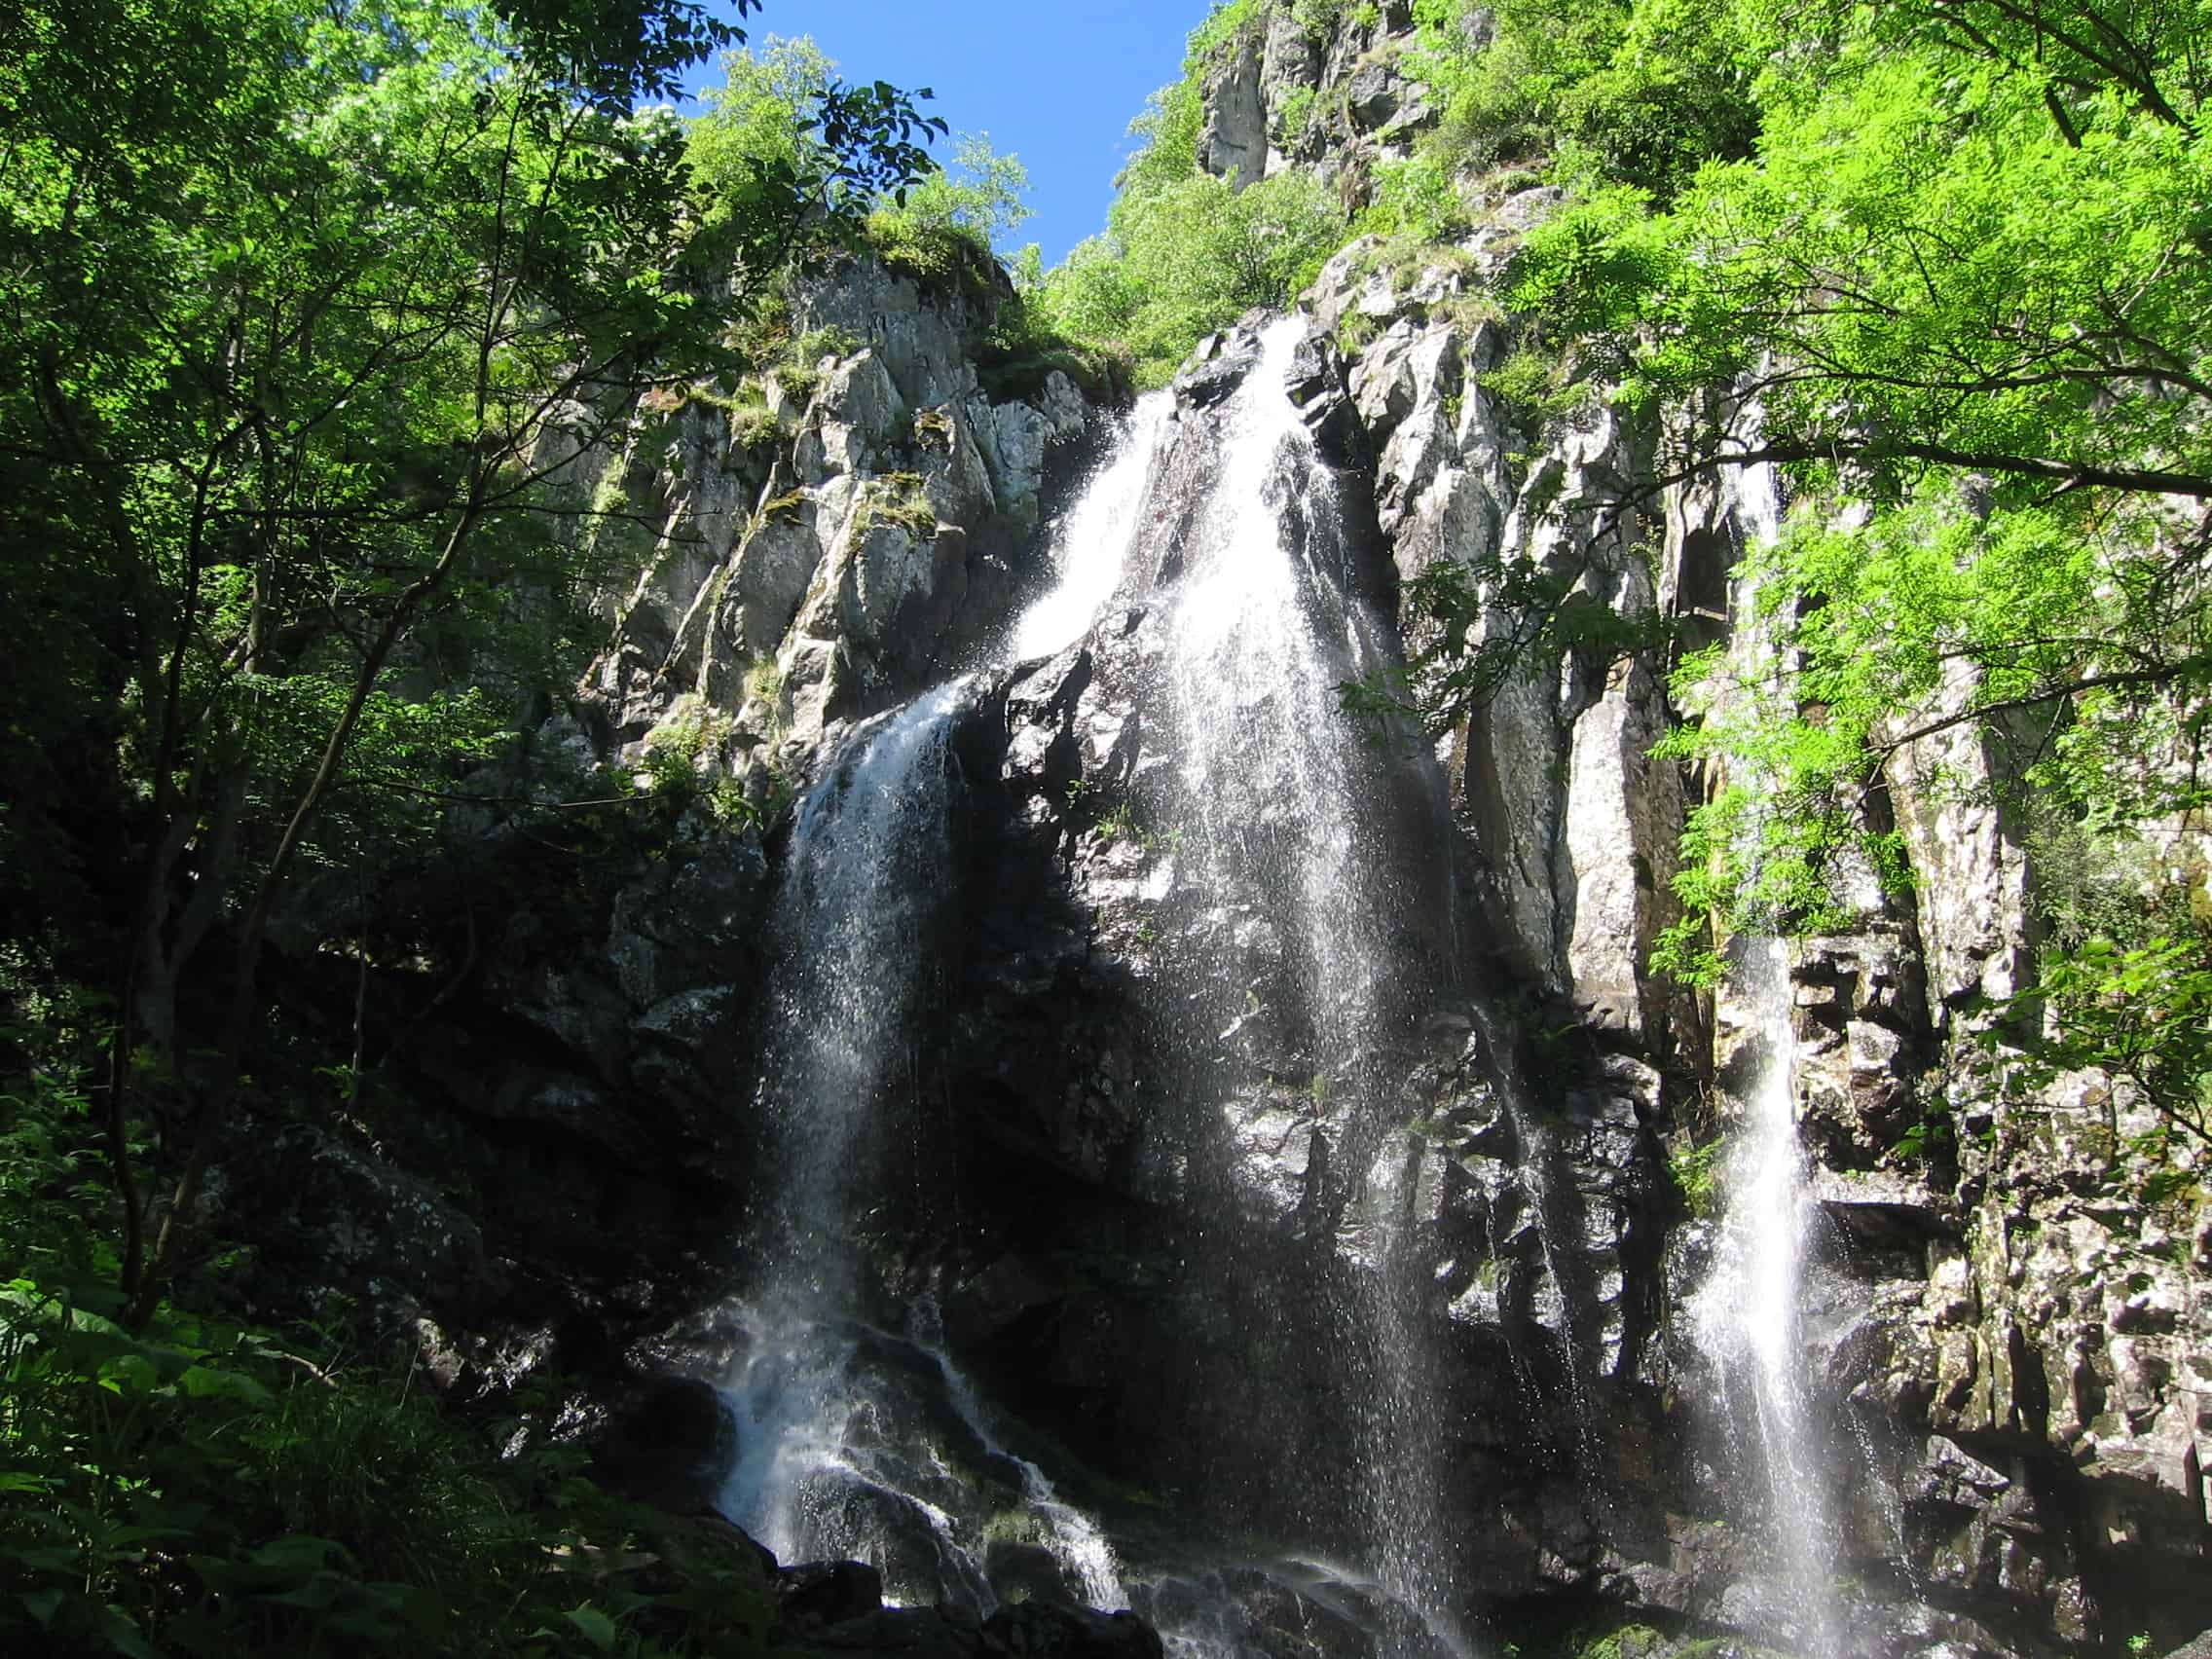 Boyana waterfall - photo: Vitosha Nature Park